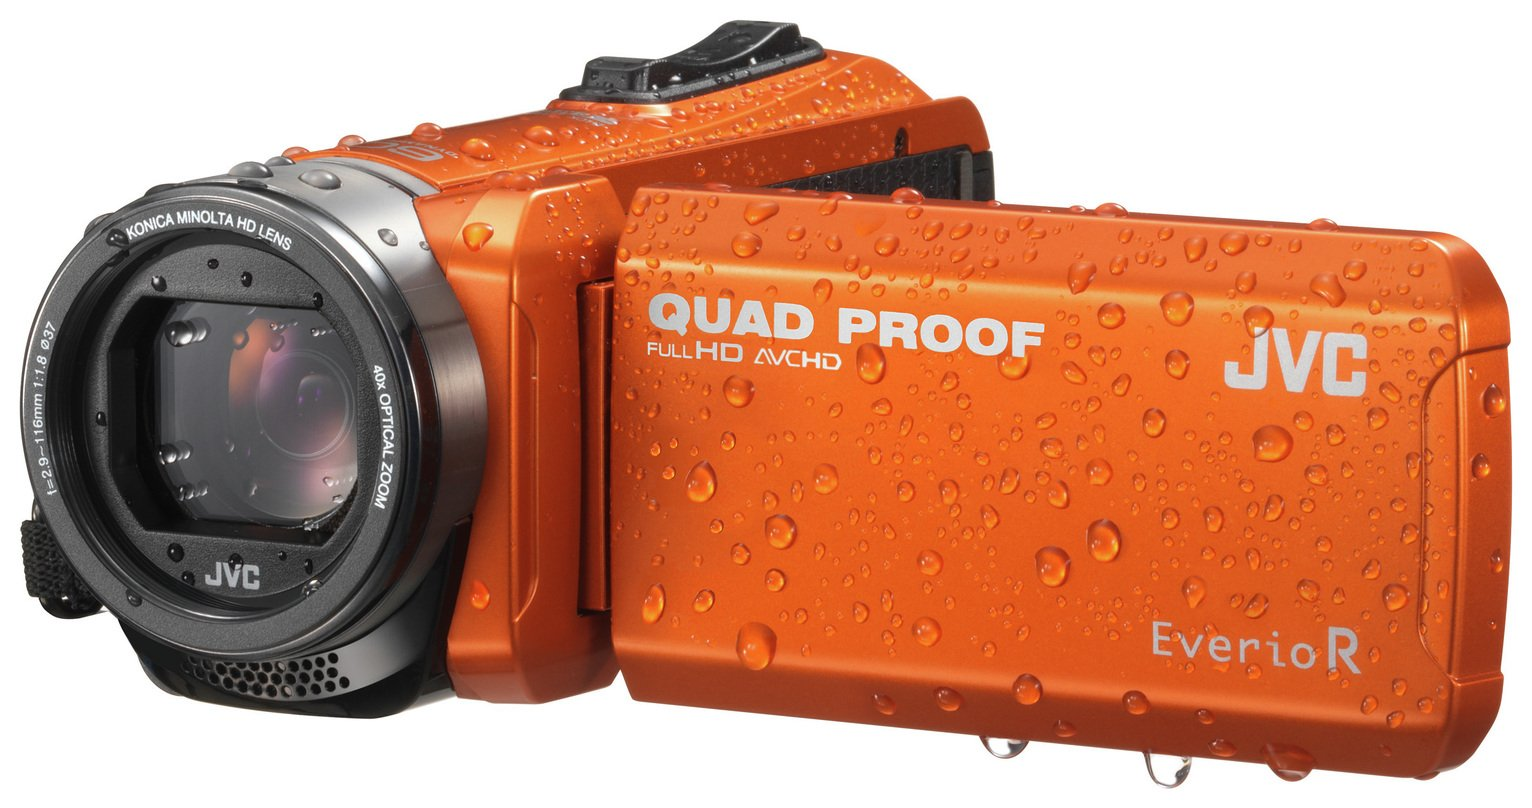 JVC GZ-R405D Full HD Quad Proof Camcorder – Orange